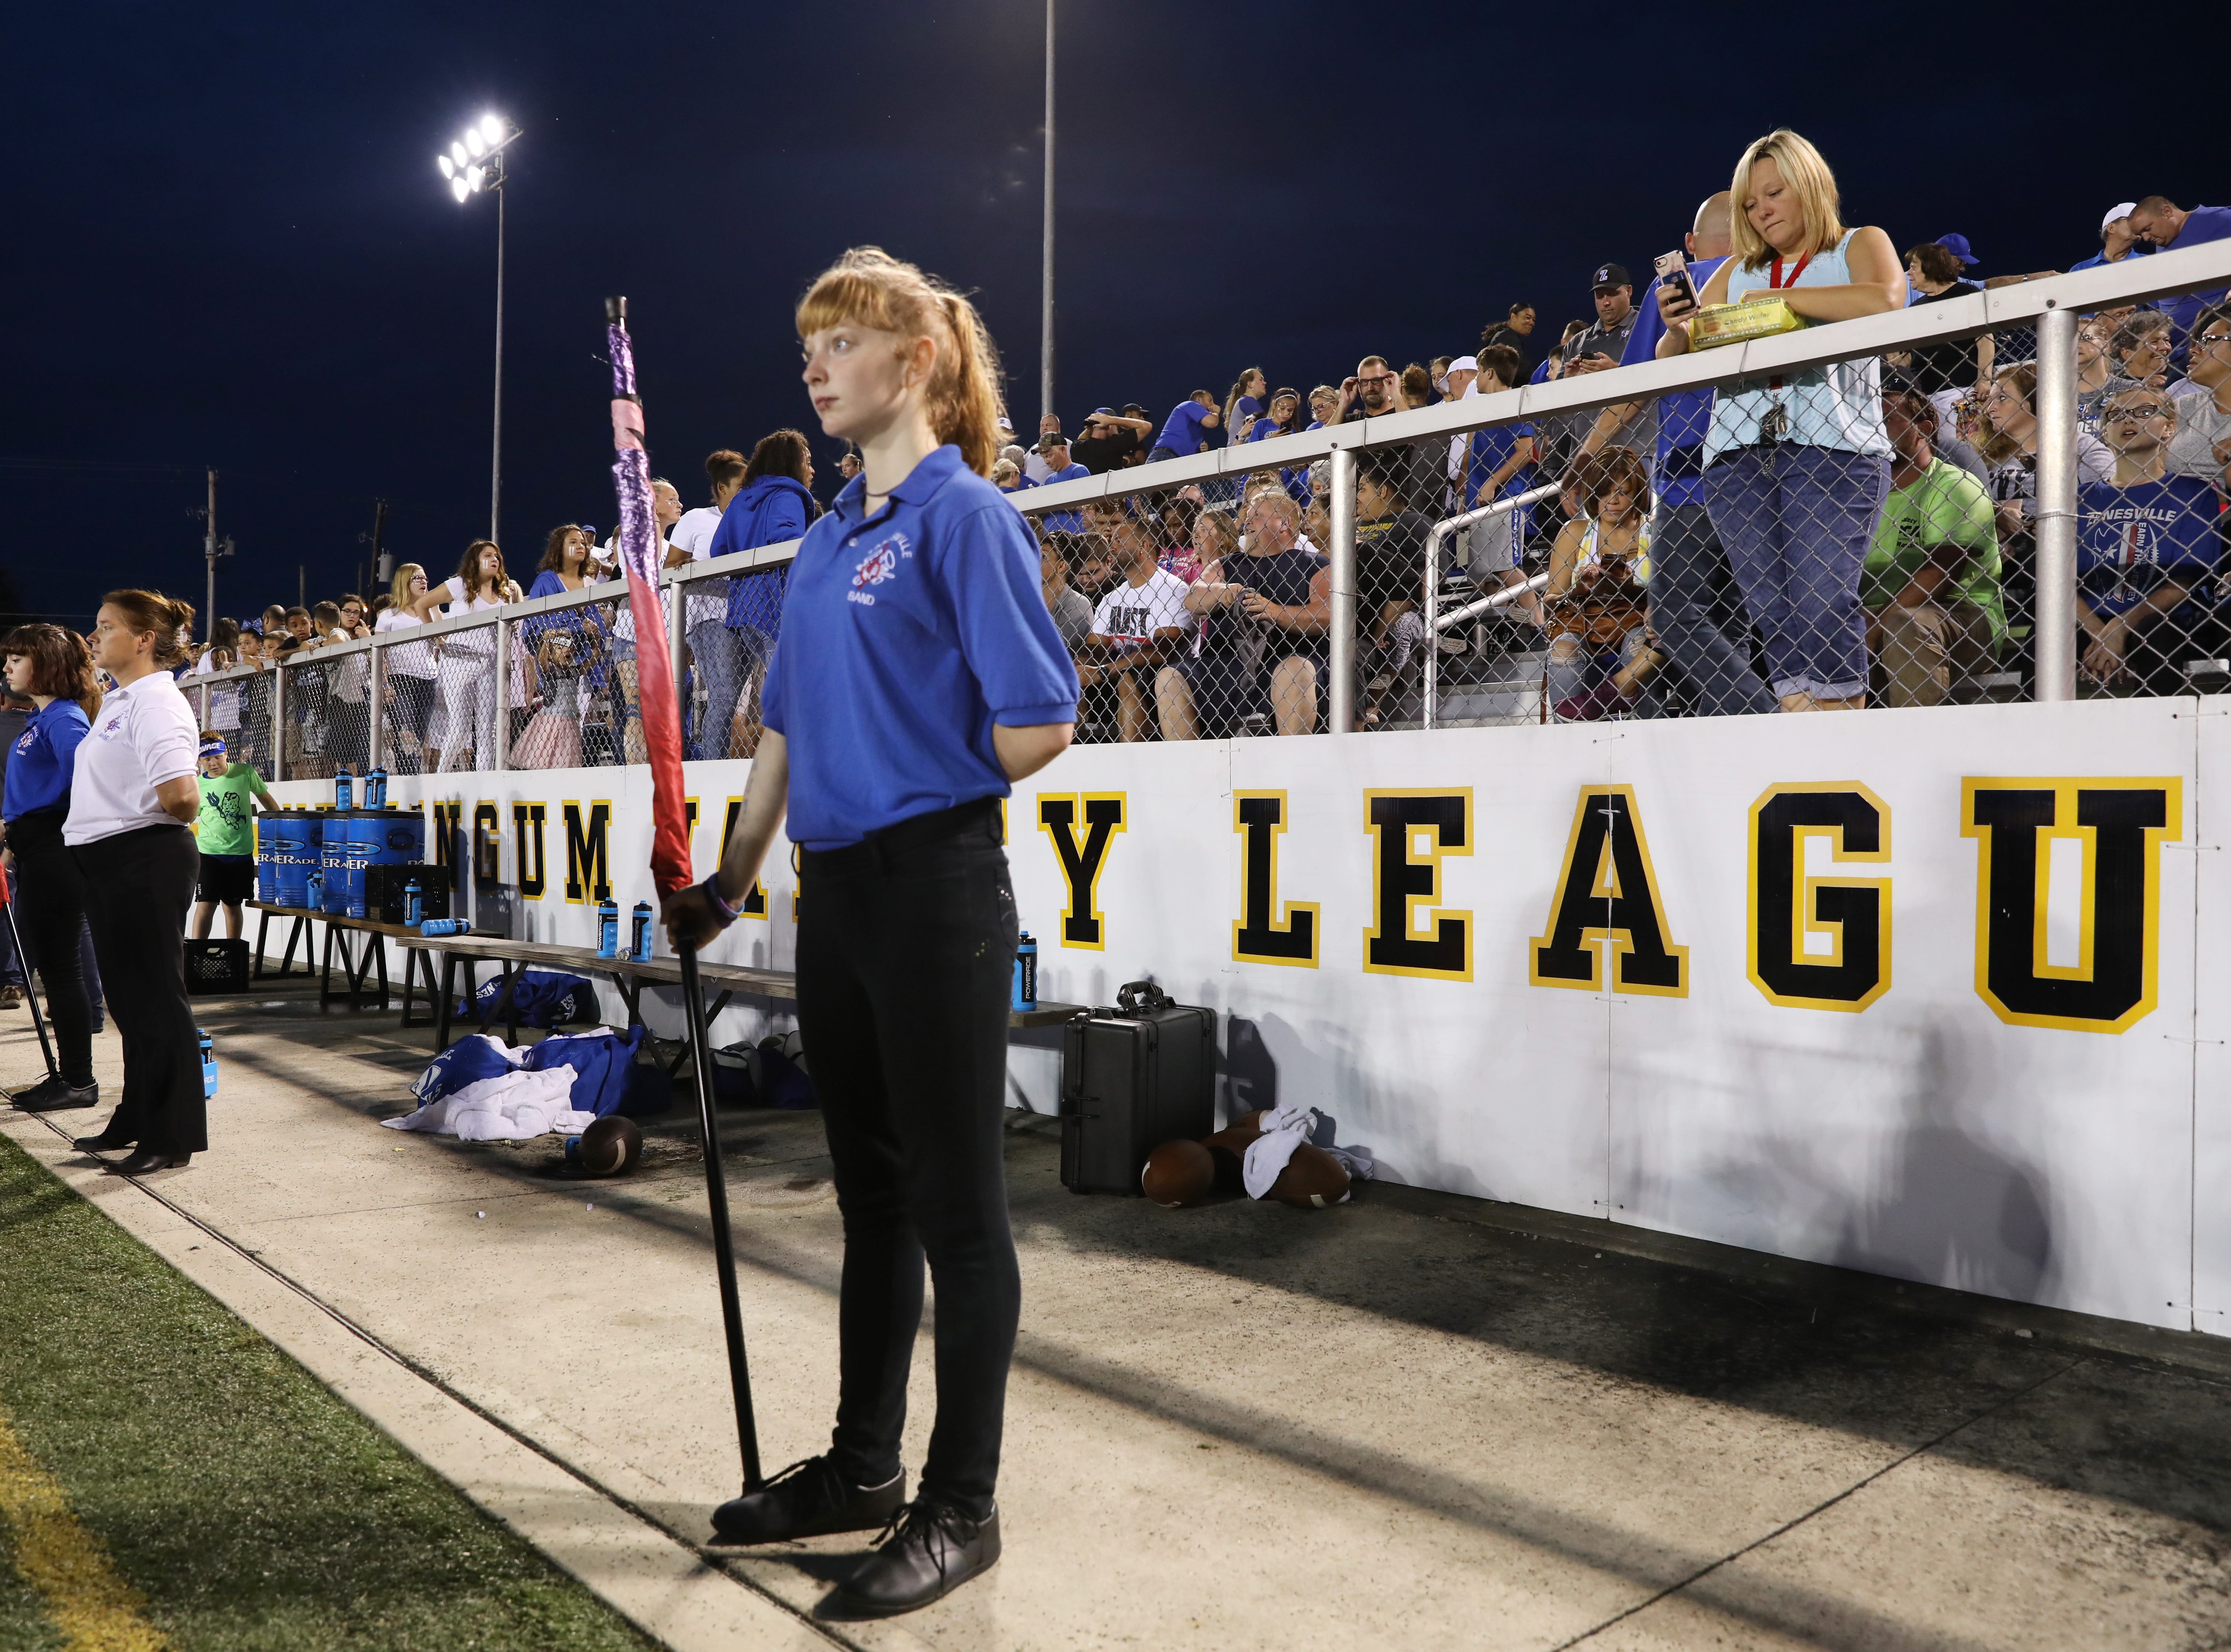 A member of the Zanesville flag corps waits to take the field for halftime against Tri-Valley.